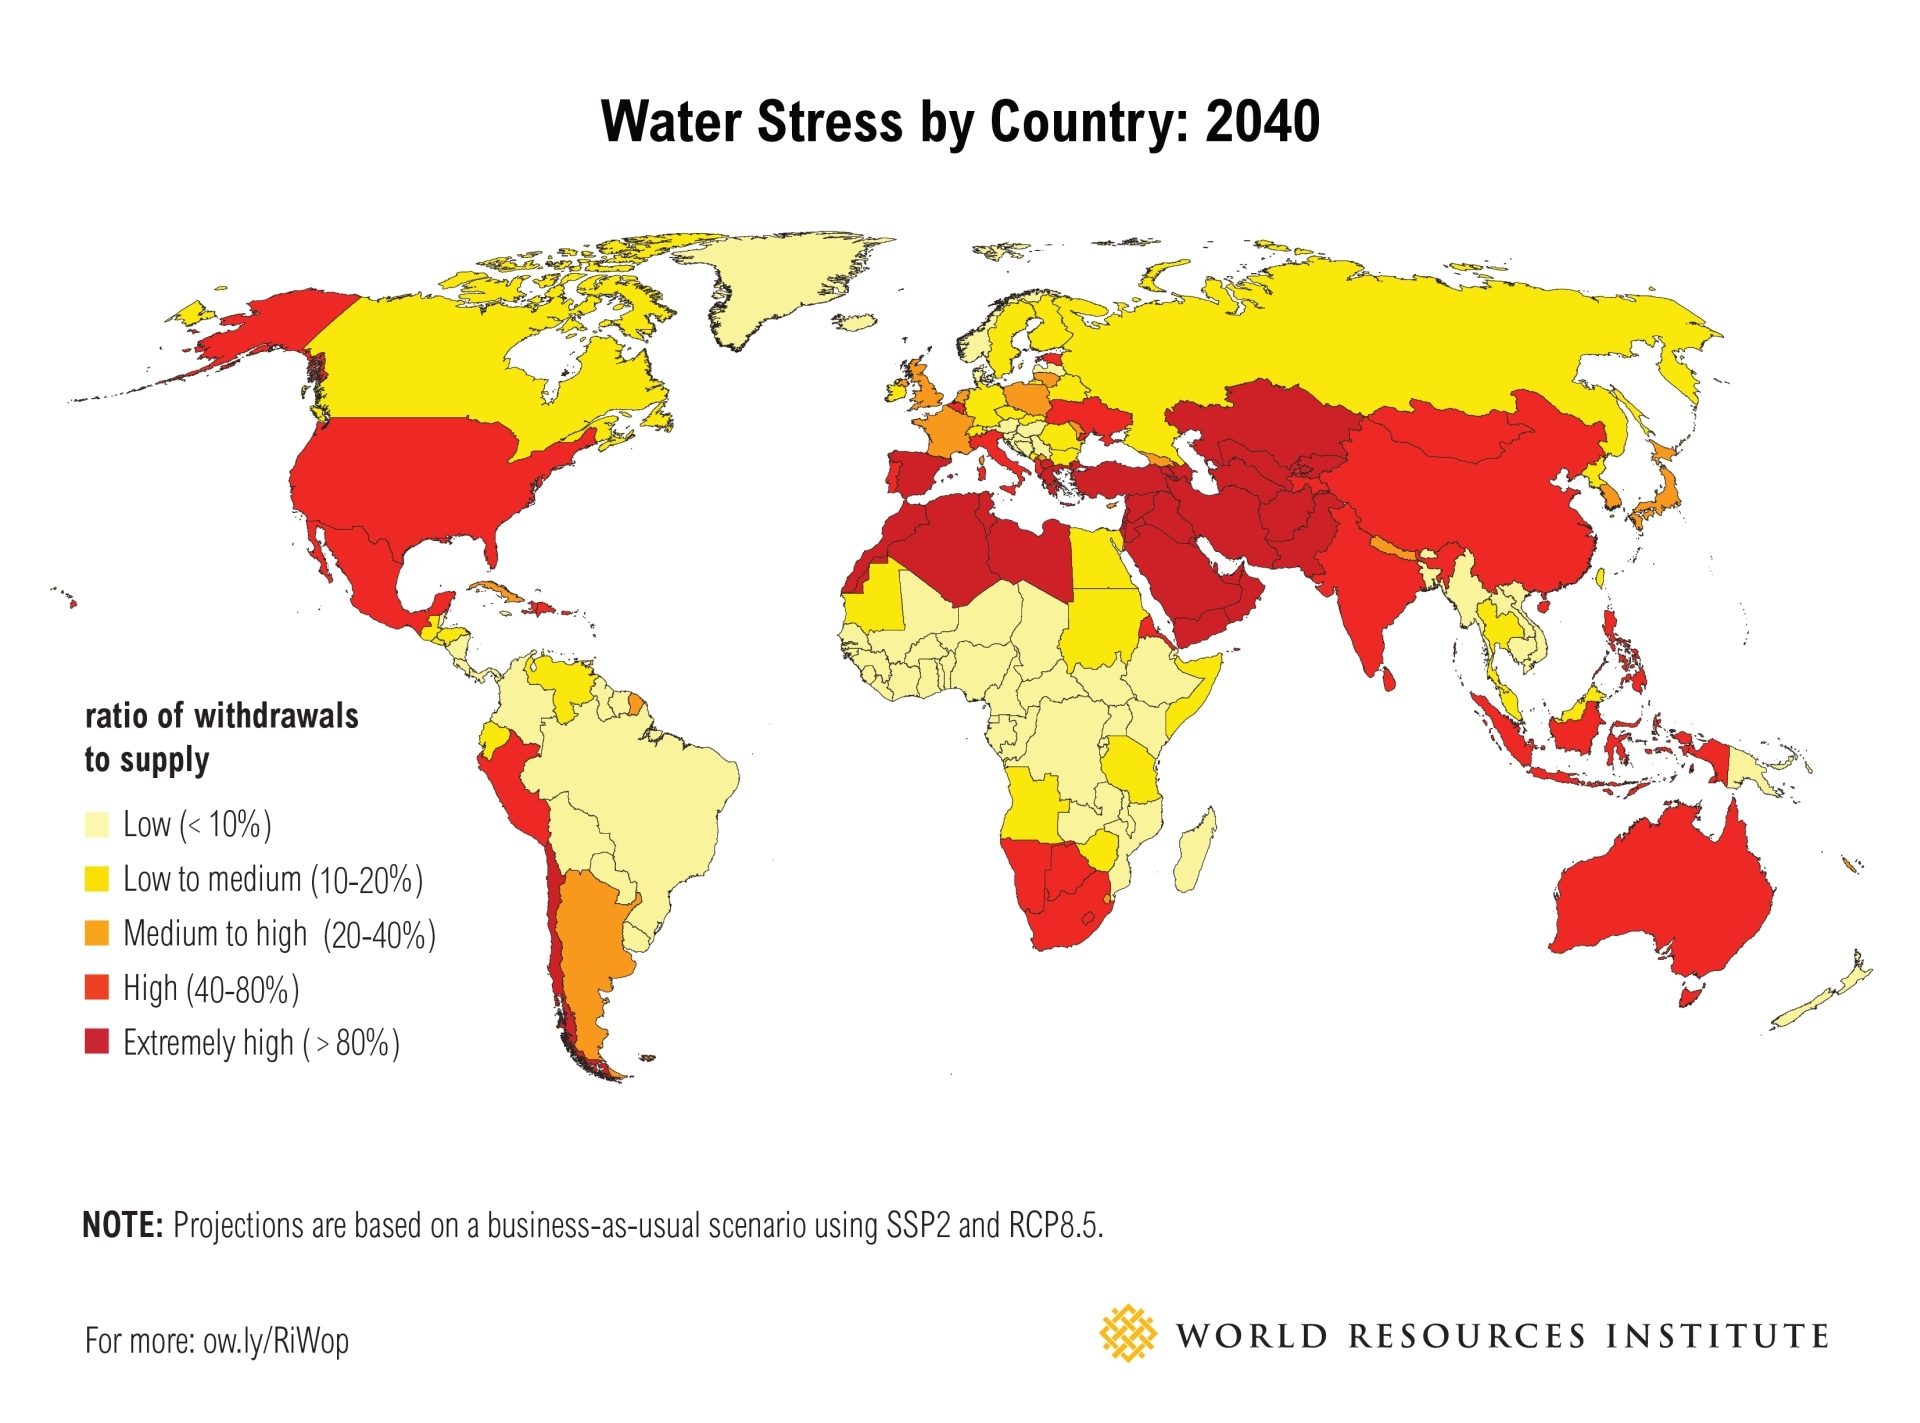 water-stress-by-country-2015-2040